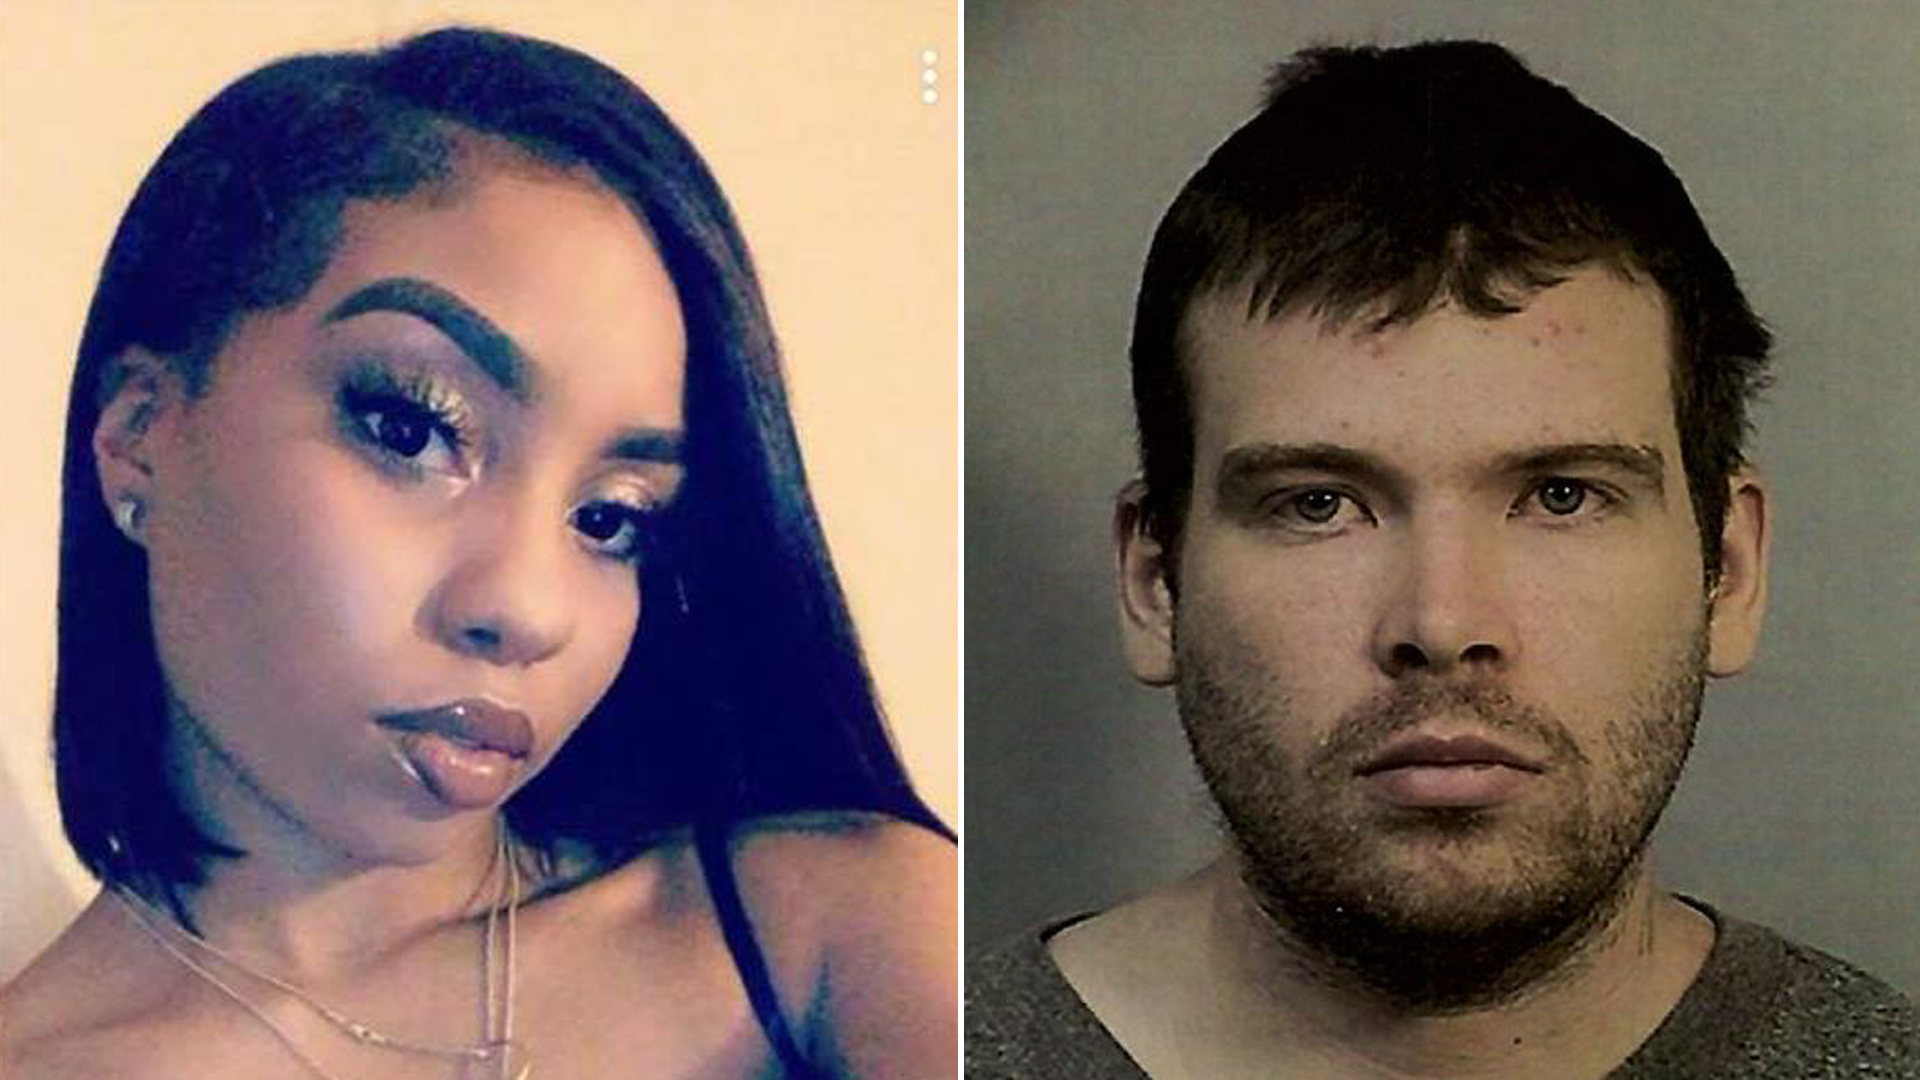 Nia Wilson, left, is seen in an image uploaded to her Facebook page in December 2017. At right, John Lee Cowell is seen in a booking photo released July 23, 2018, by BART police.